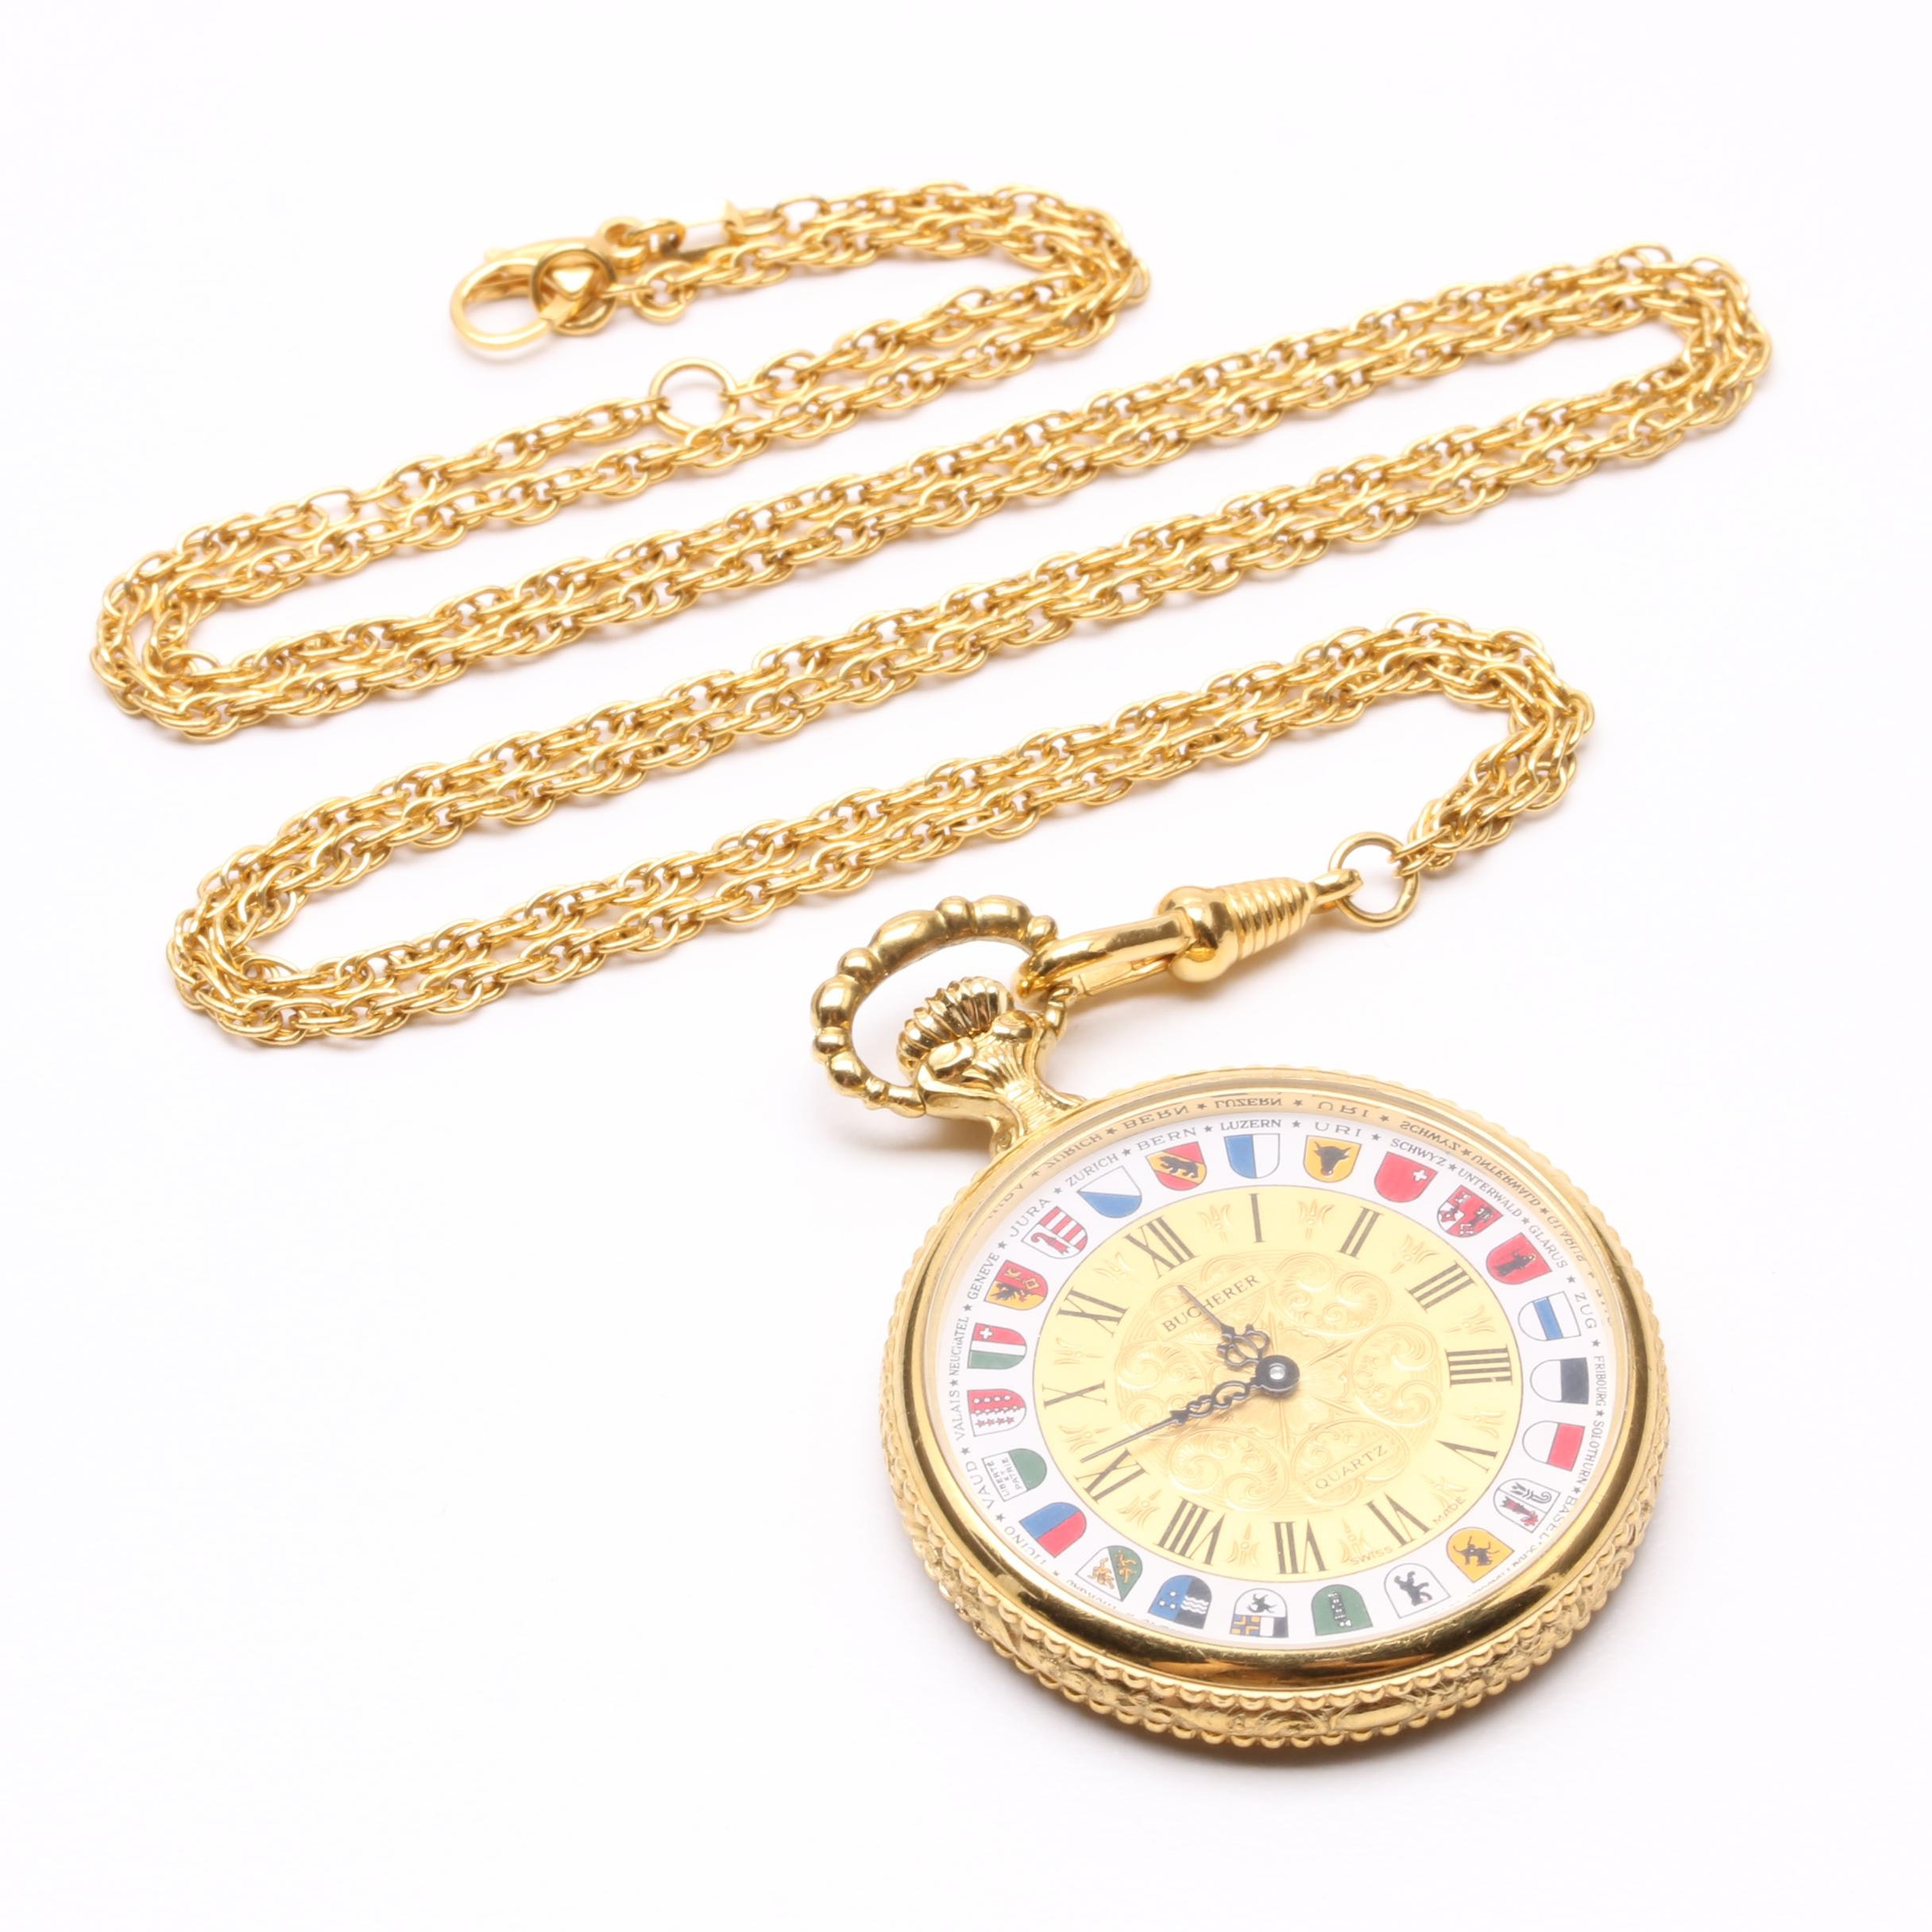 Bucherer Gold-Tone Worldwide Flag Pocket Watch with Chain